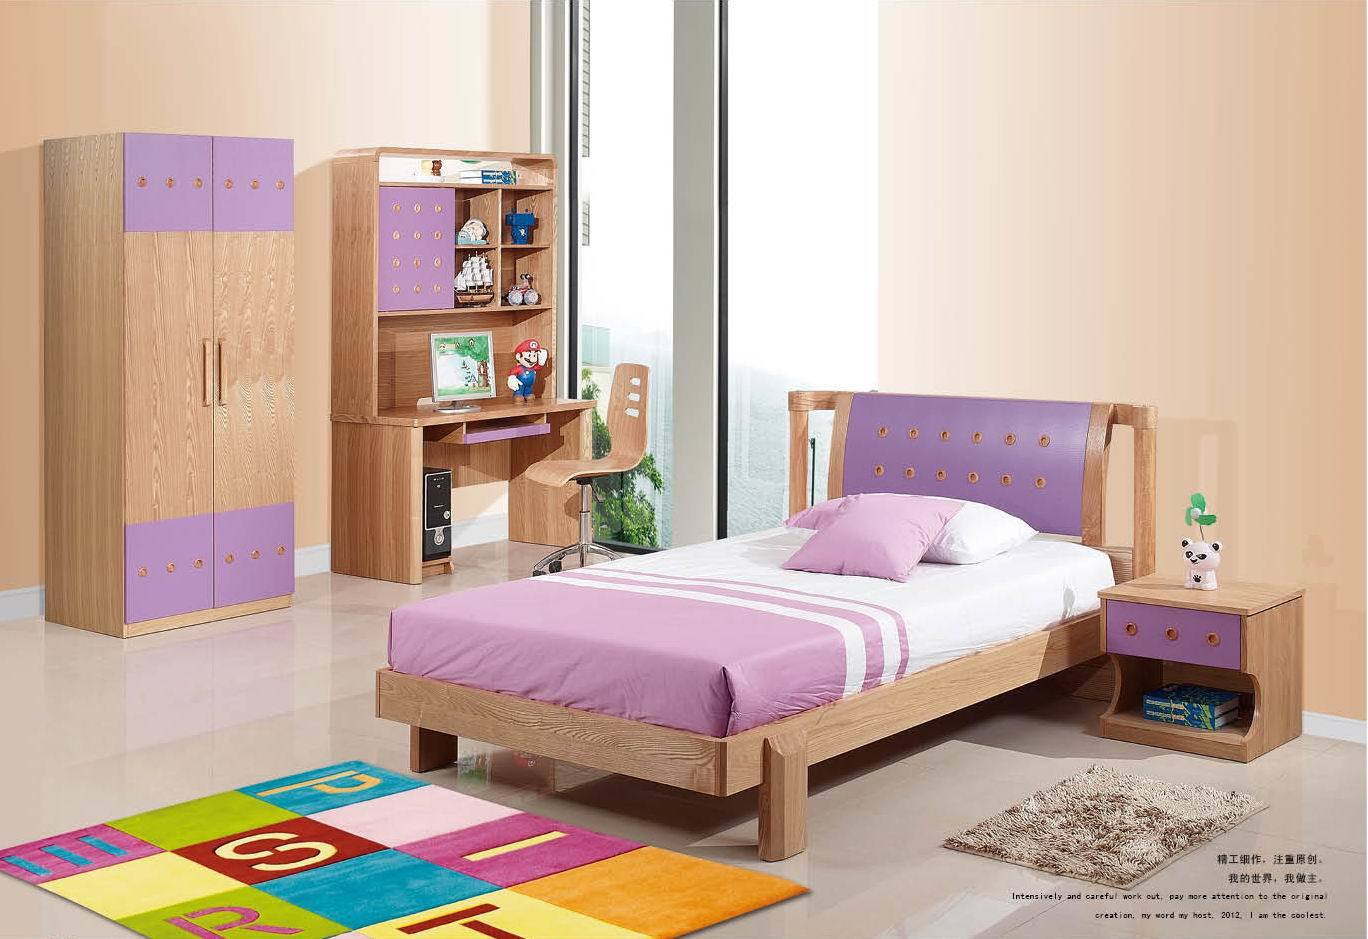 China kids bedroom set jkd 20130 china kids bedroom kids furniture - Bedroom for kids ...